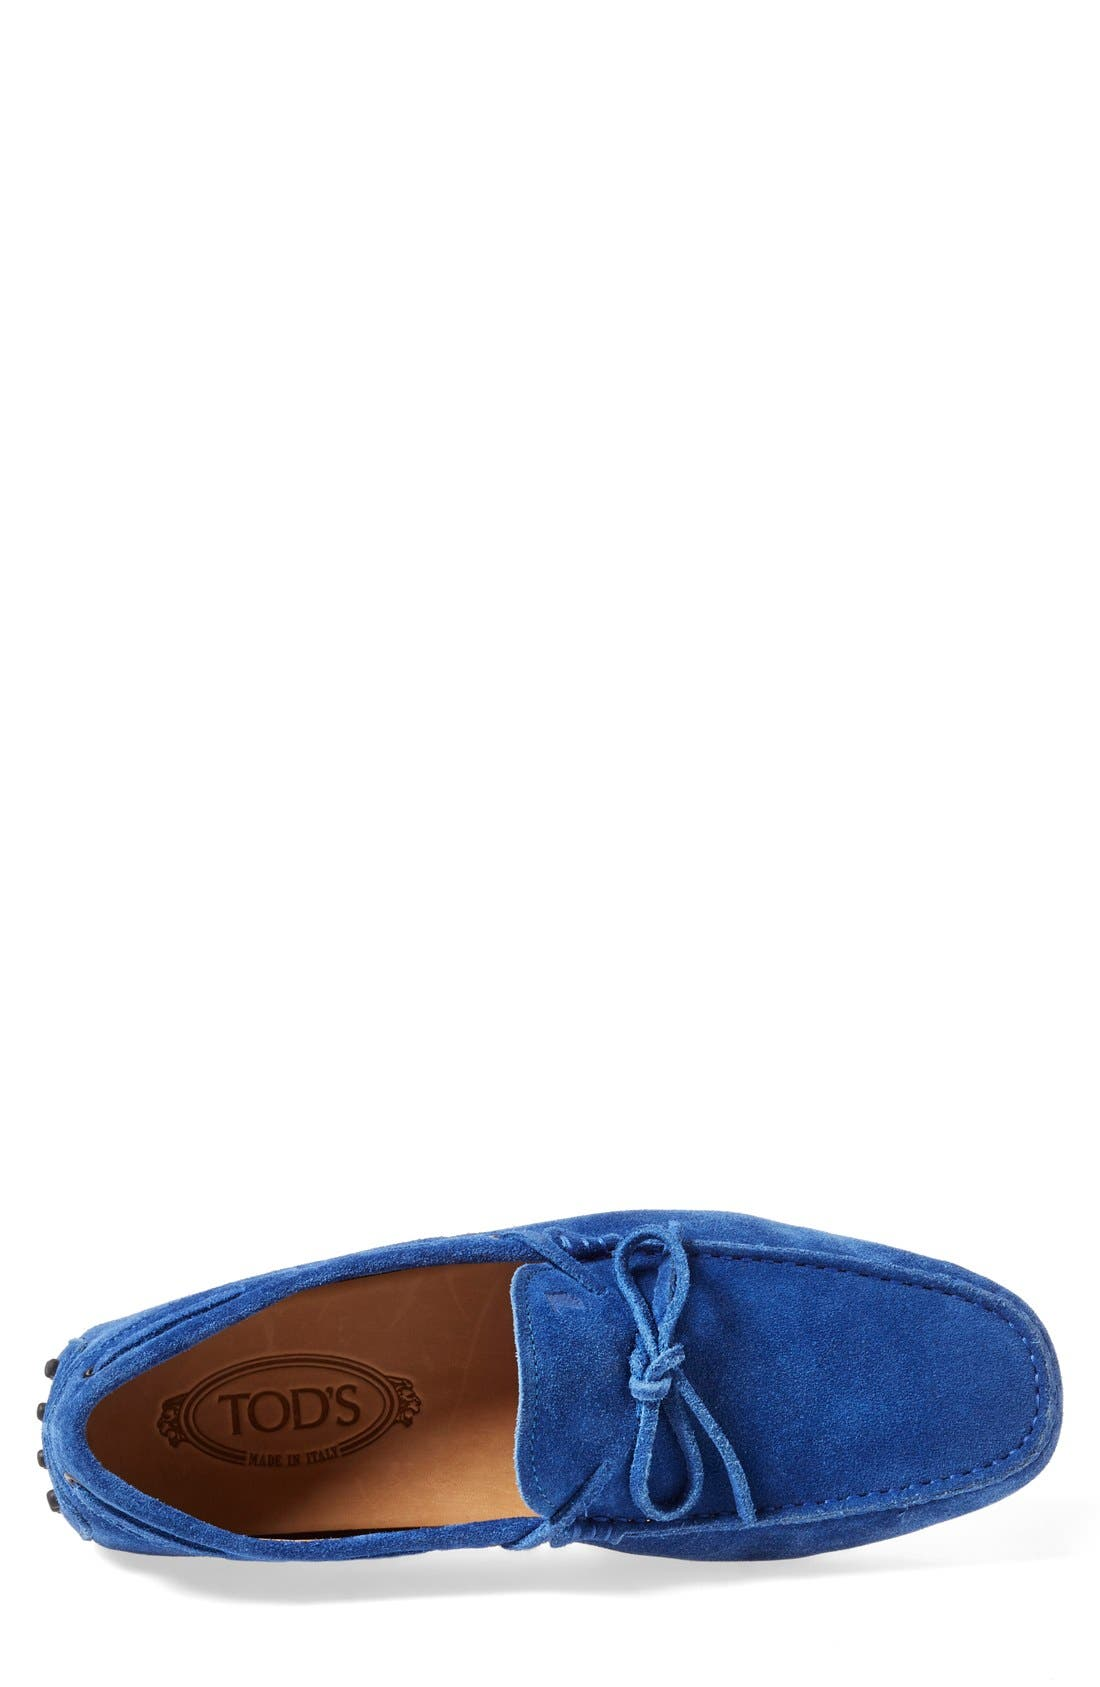 Gommini Tie Front Driving Moccasin,                             Alternate thumbnail 58, color,